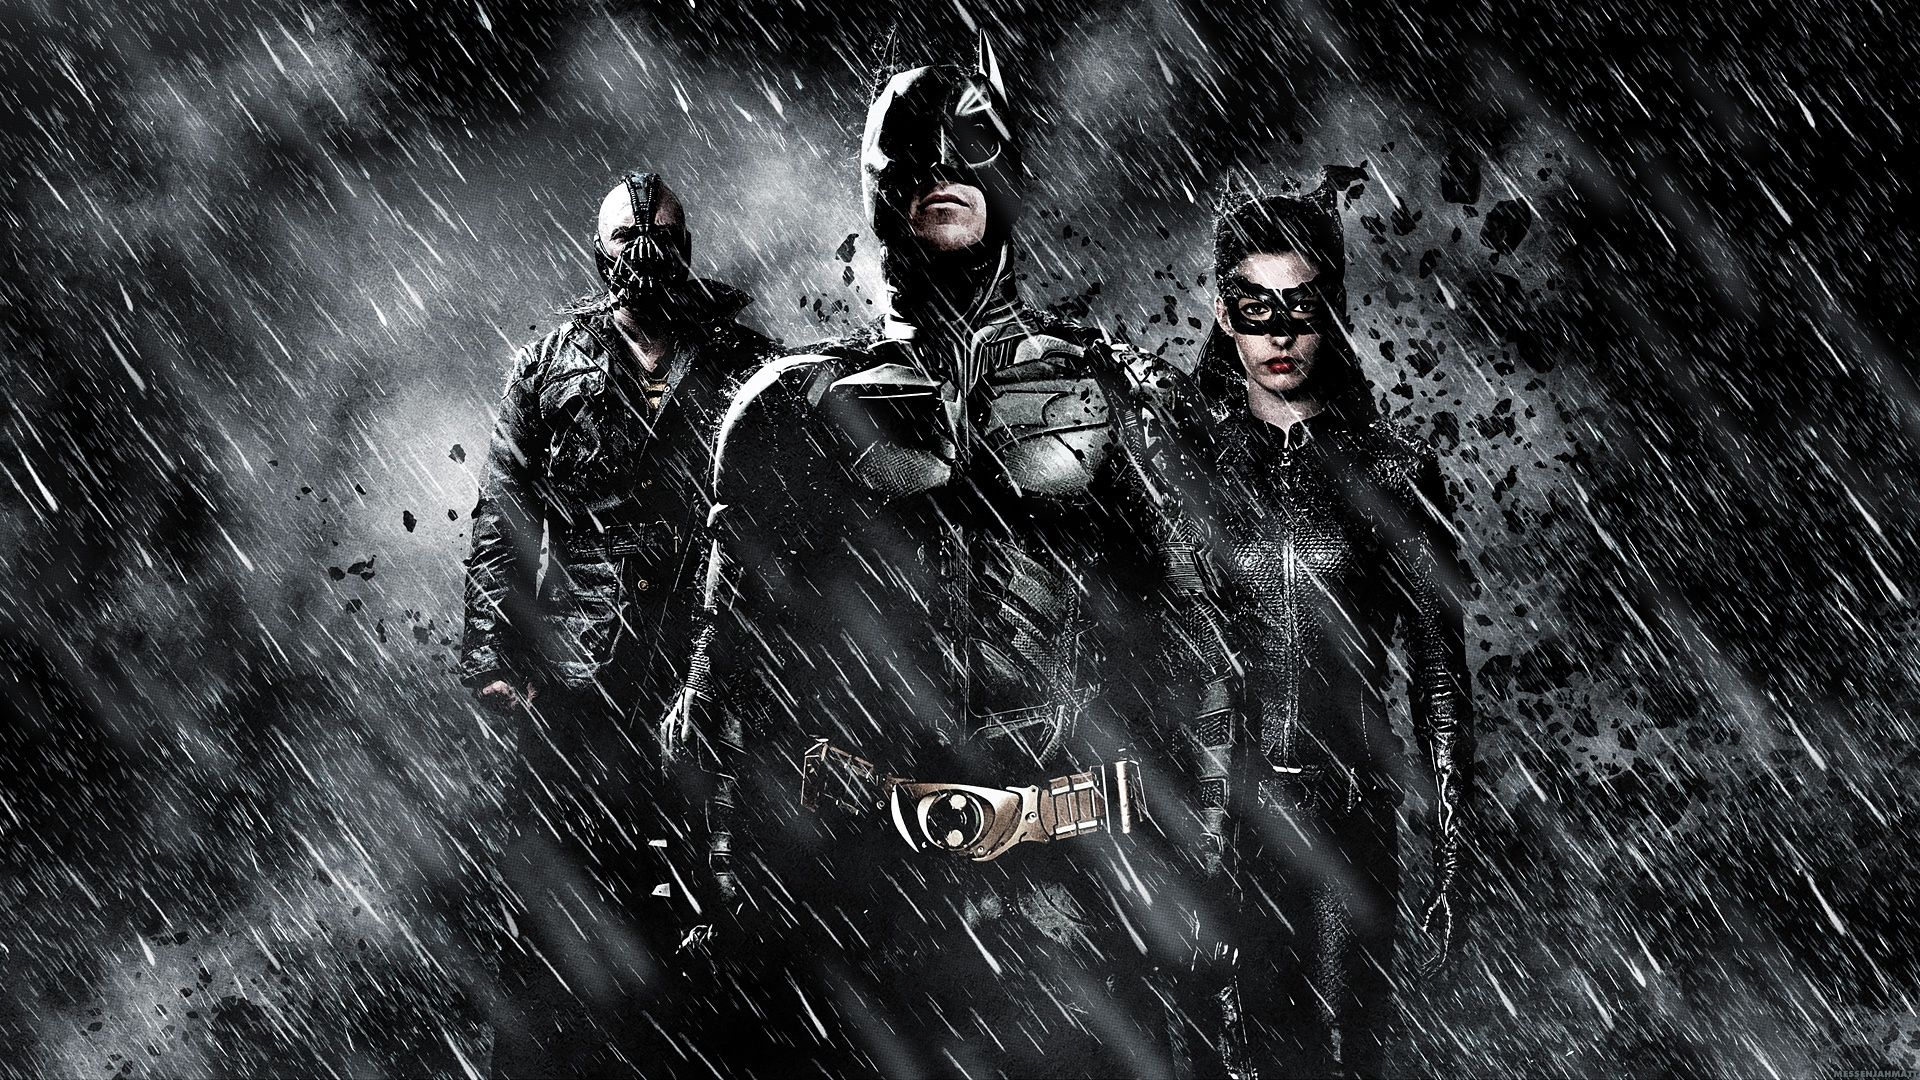 The Dark Knight Rises Movie Wallpapers HD 1080p